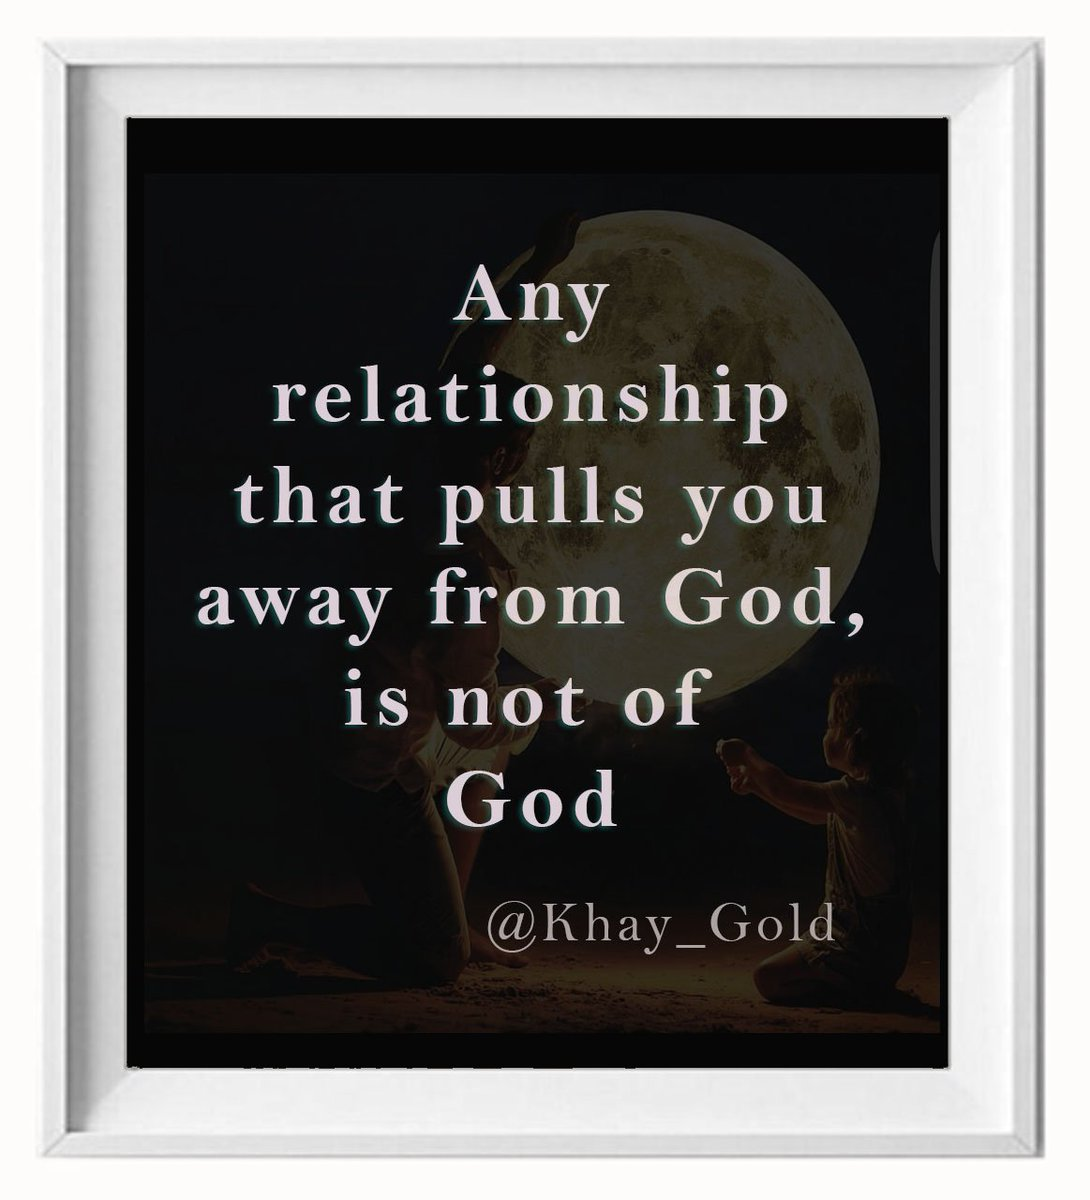 &quot;Any relationship that pulls you away from God, is not of God&quot; @Khay_Gold  #God <br>http://pic.twitter.com/39hTOFuPzF